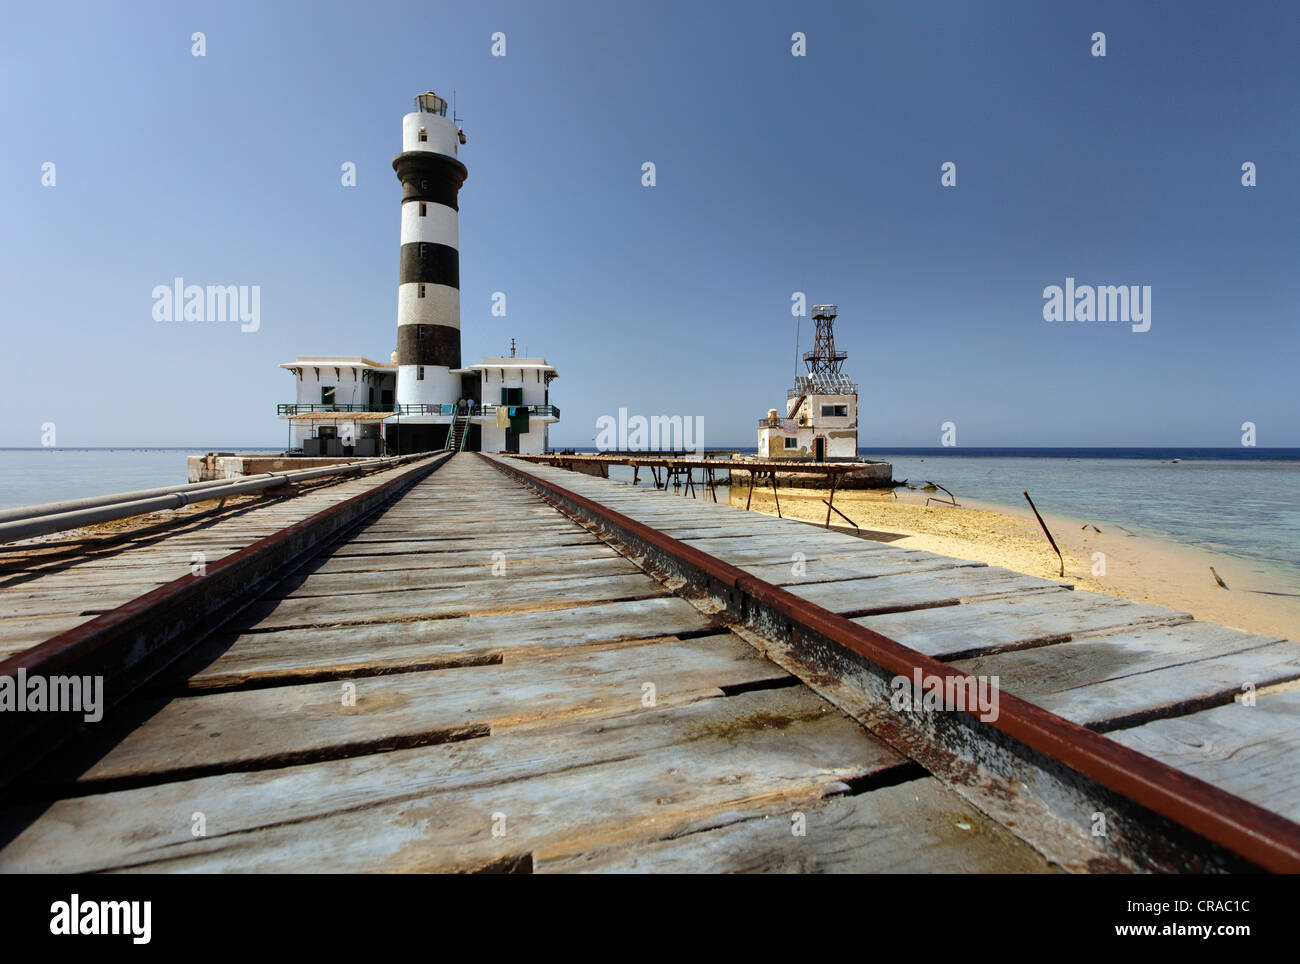 Rails, lighthouse with adjoining building, jetty and reef top, Daedalus Reef, Egypt, Red Sea, Africa - Stock Image